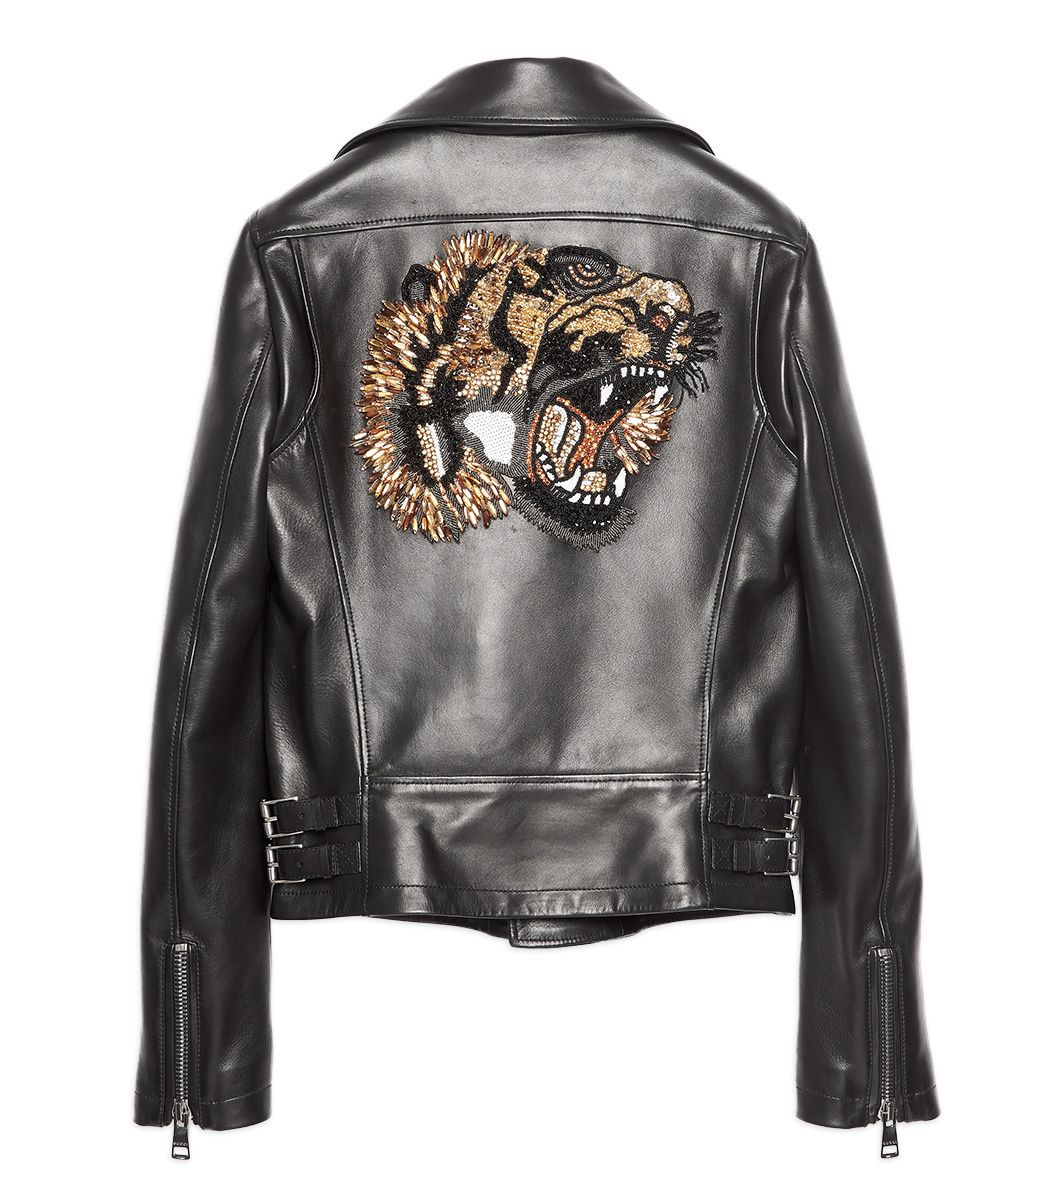 10dc5c24 GUCCI Black 'Tiger' Leather Jacket - Moto styled featuring a rear  embellished tiger graphic.